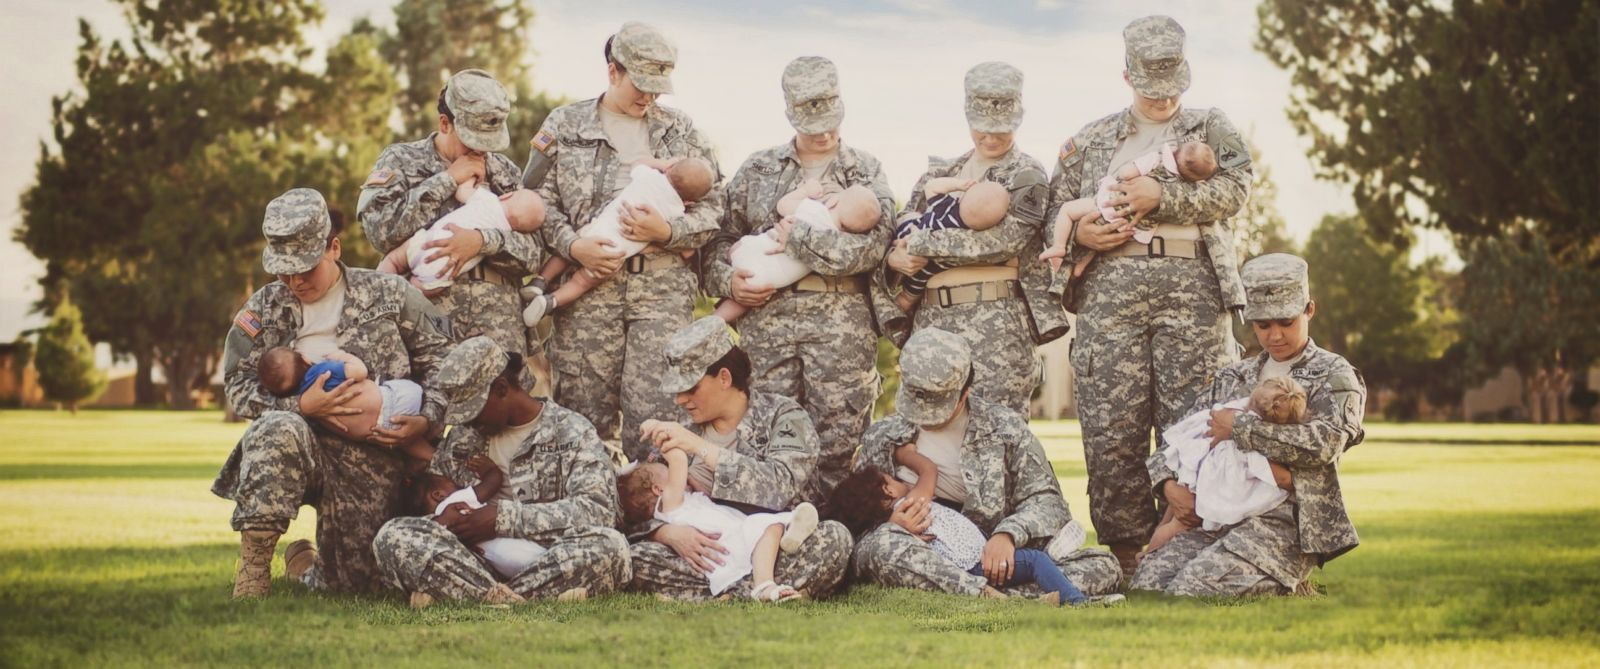 PHOTO: This picture of breastfeeding military moms quickly went viral after photographer Tara Ruby posted it on Facebook.